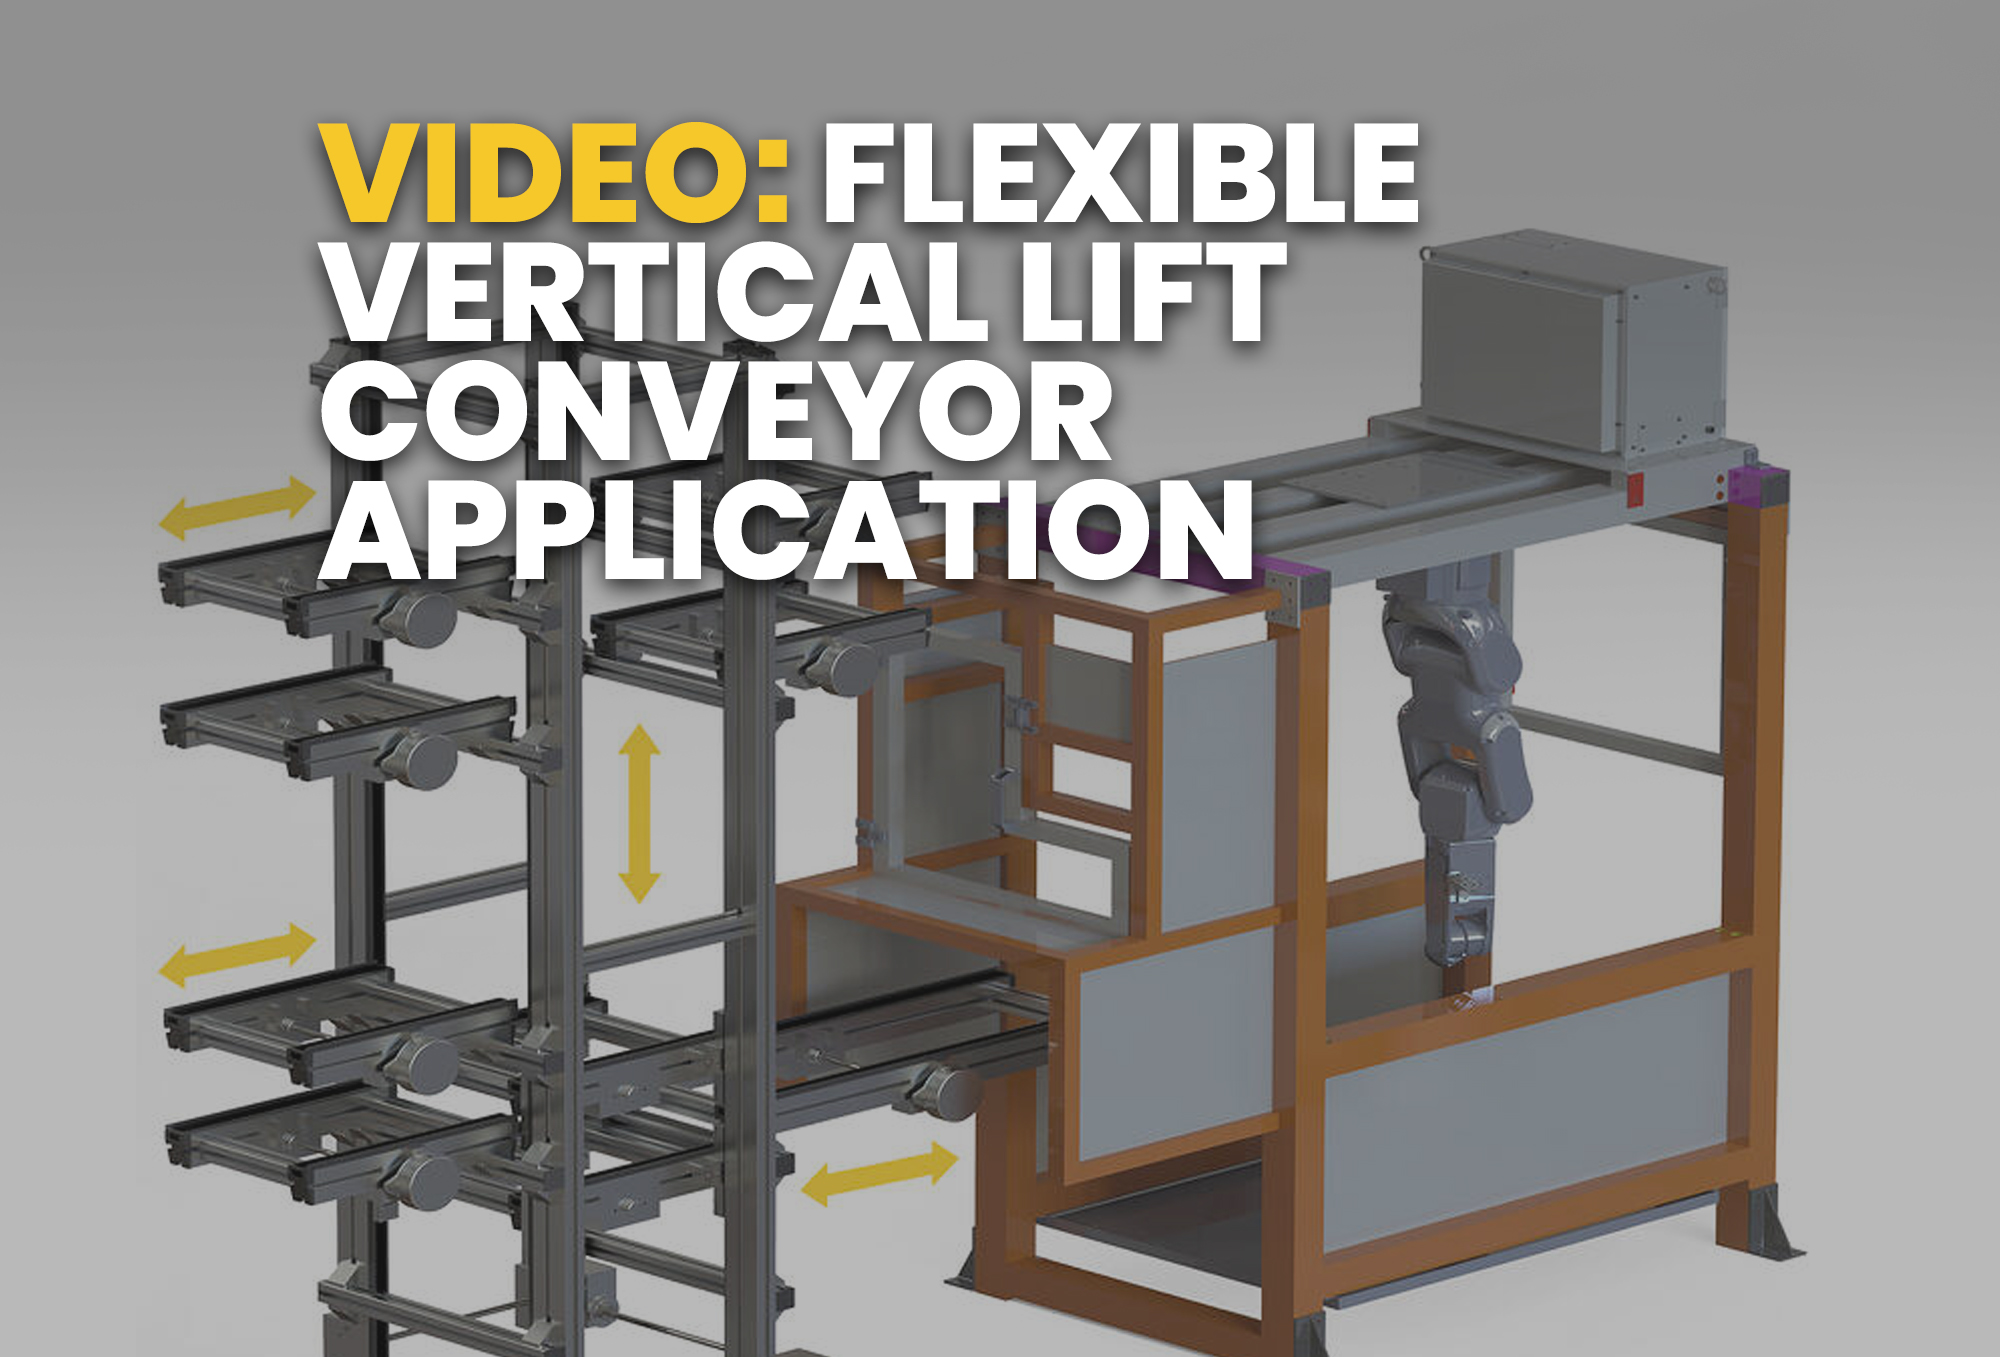 video- Flexible Vertical Lift Conveyor Application